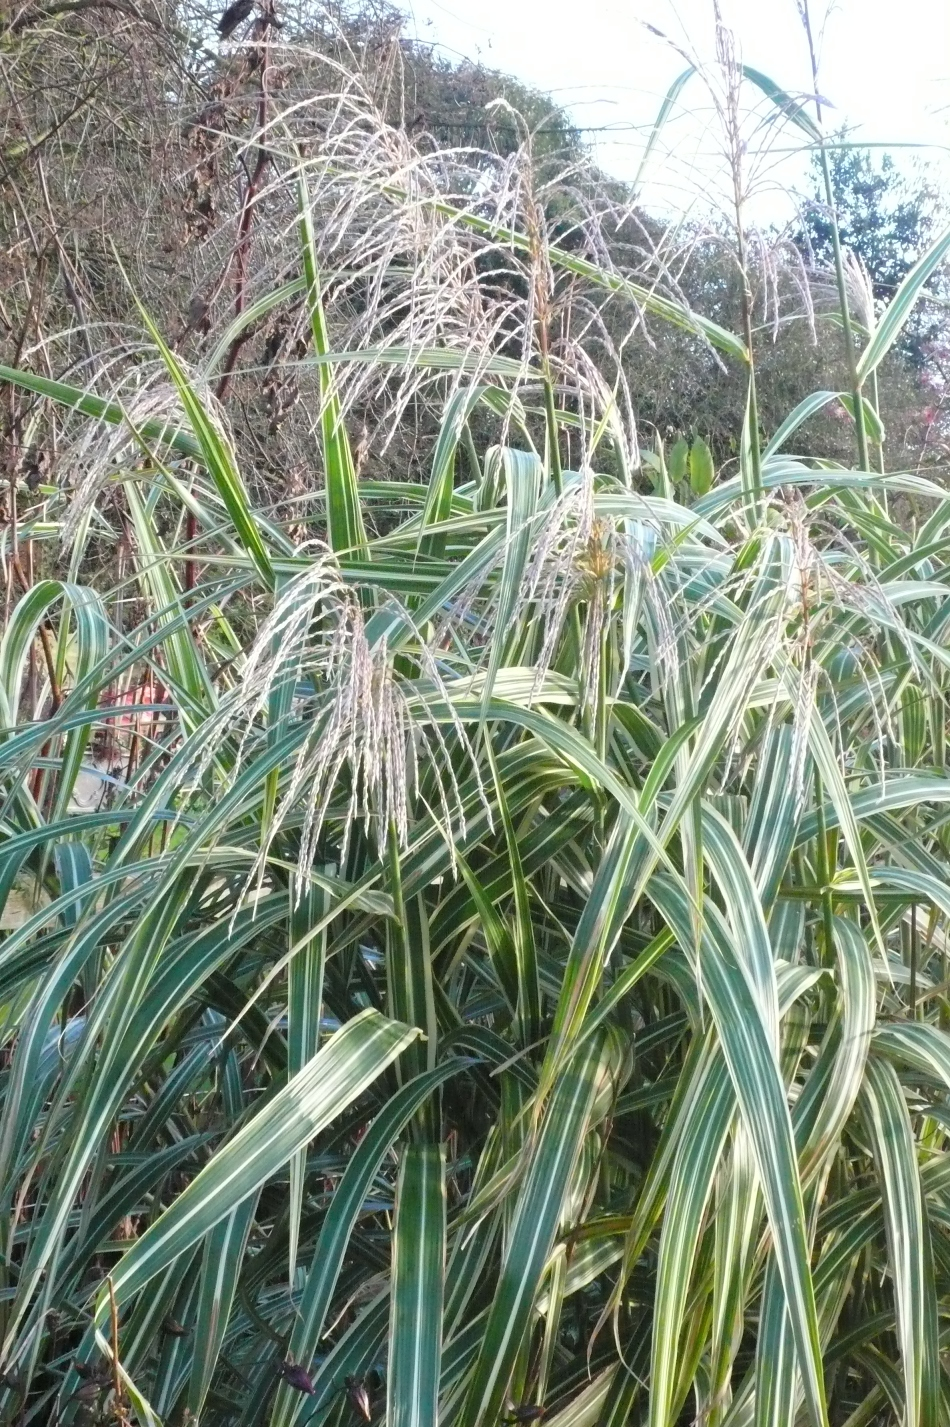 Ornamental grasses stillingfleet lodge gardens for Very tall ornamental grasses